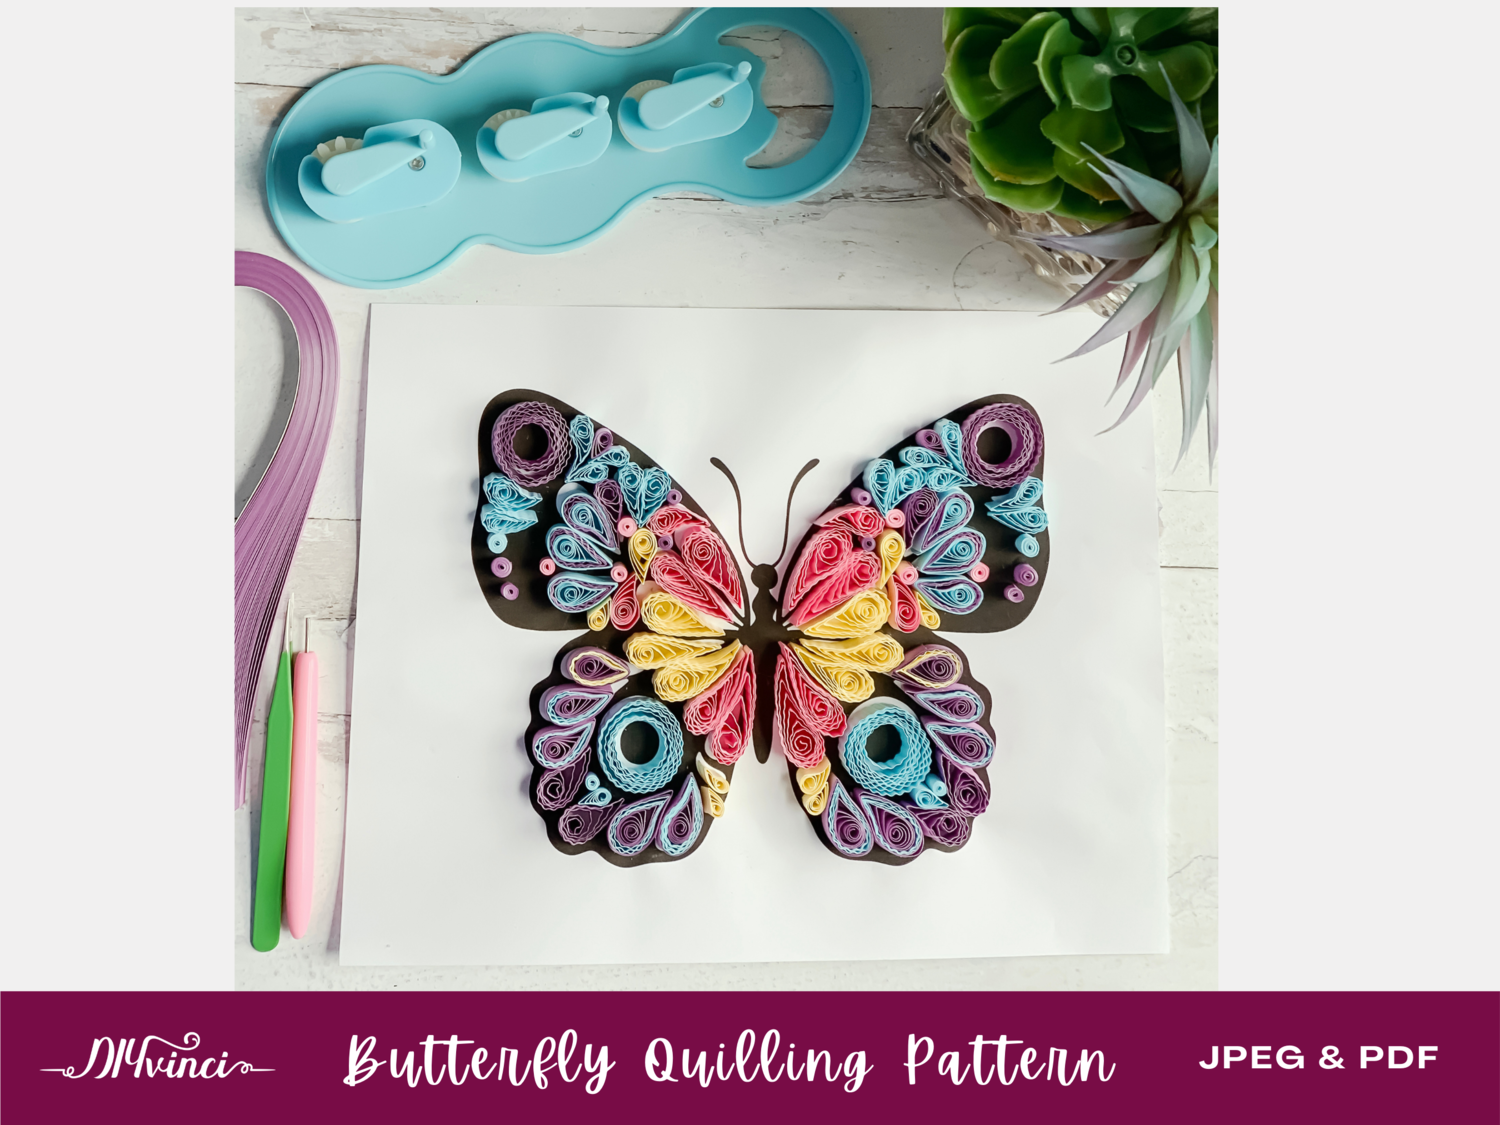 Butterfly Quilling Pattern